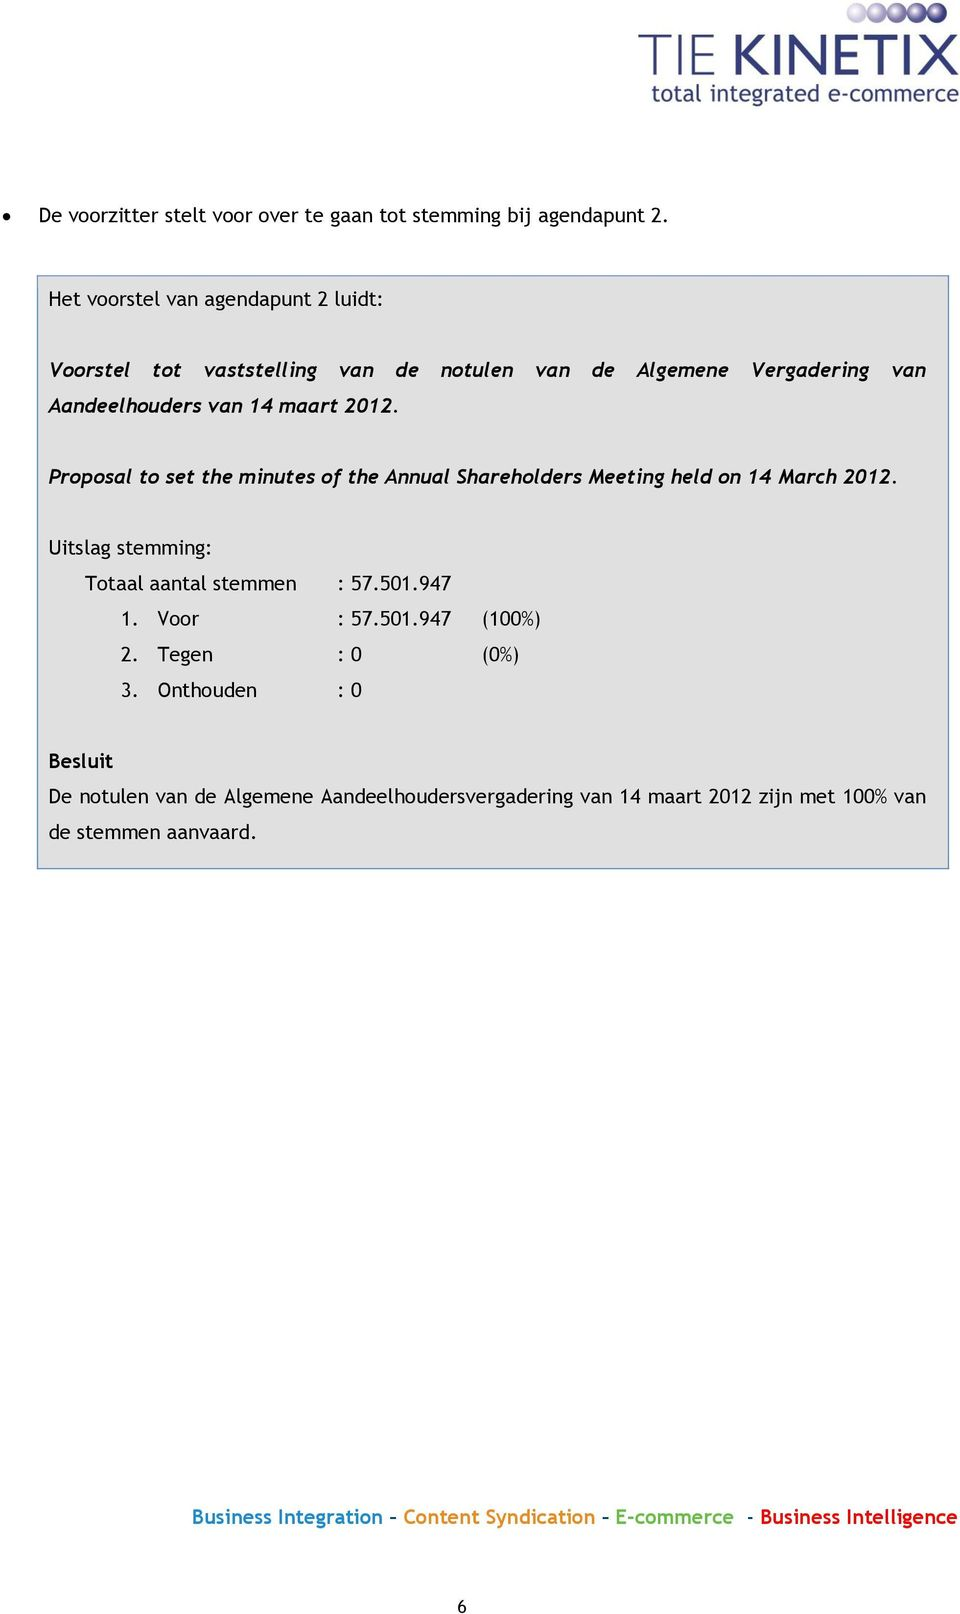 maart 2012. Proposal to set the minutes of the Annual Shareholders Meeting held on 14 March 2012.